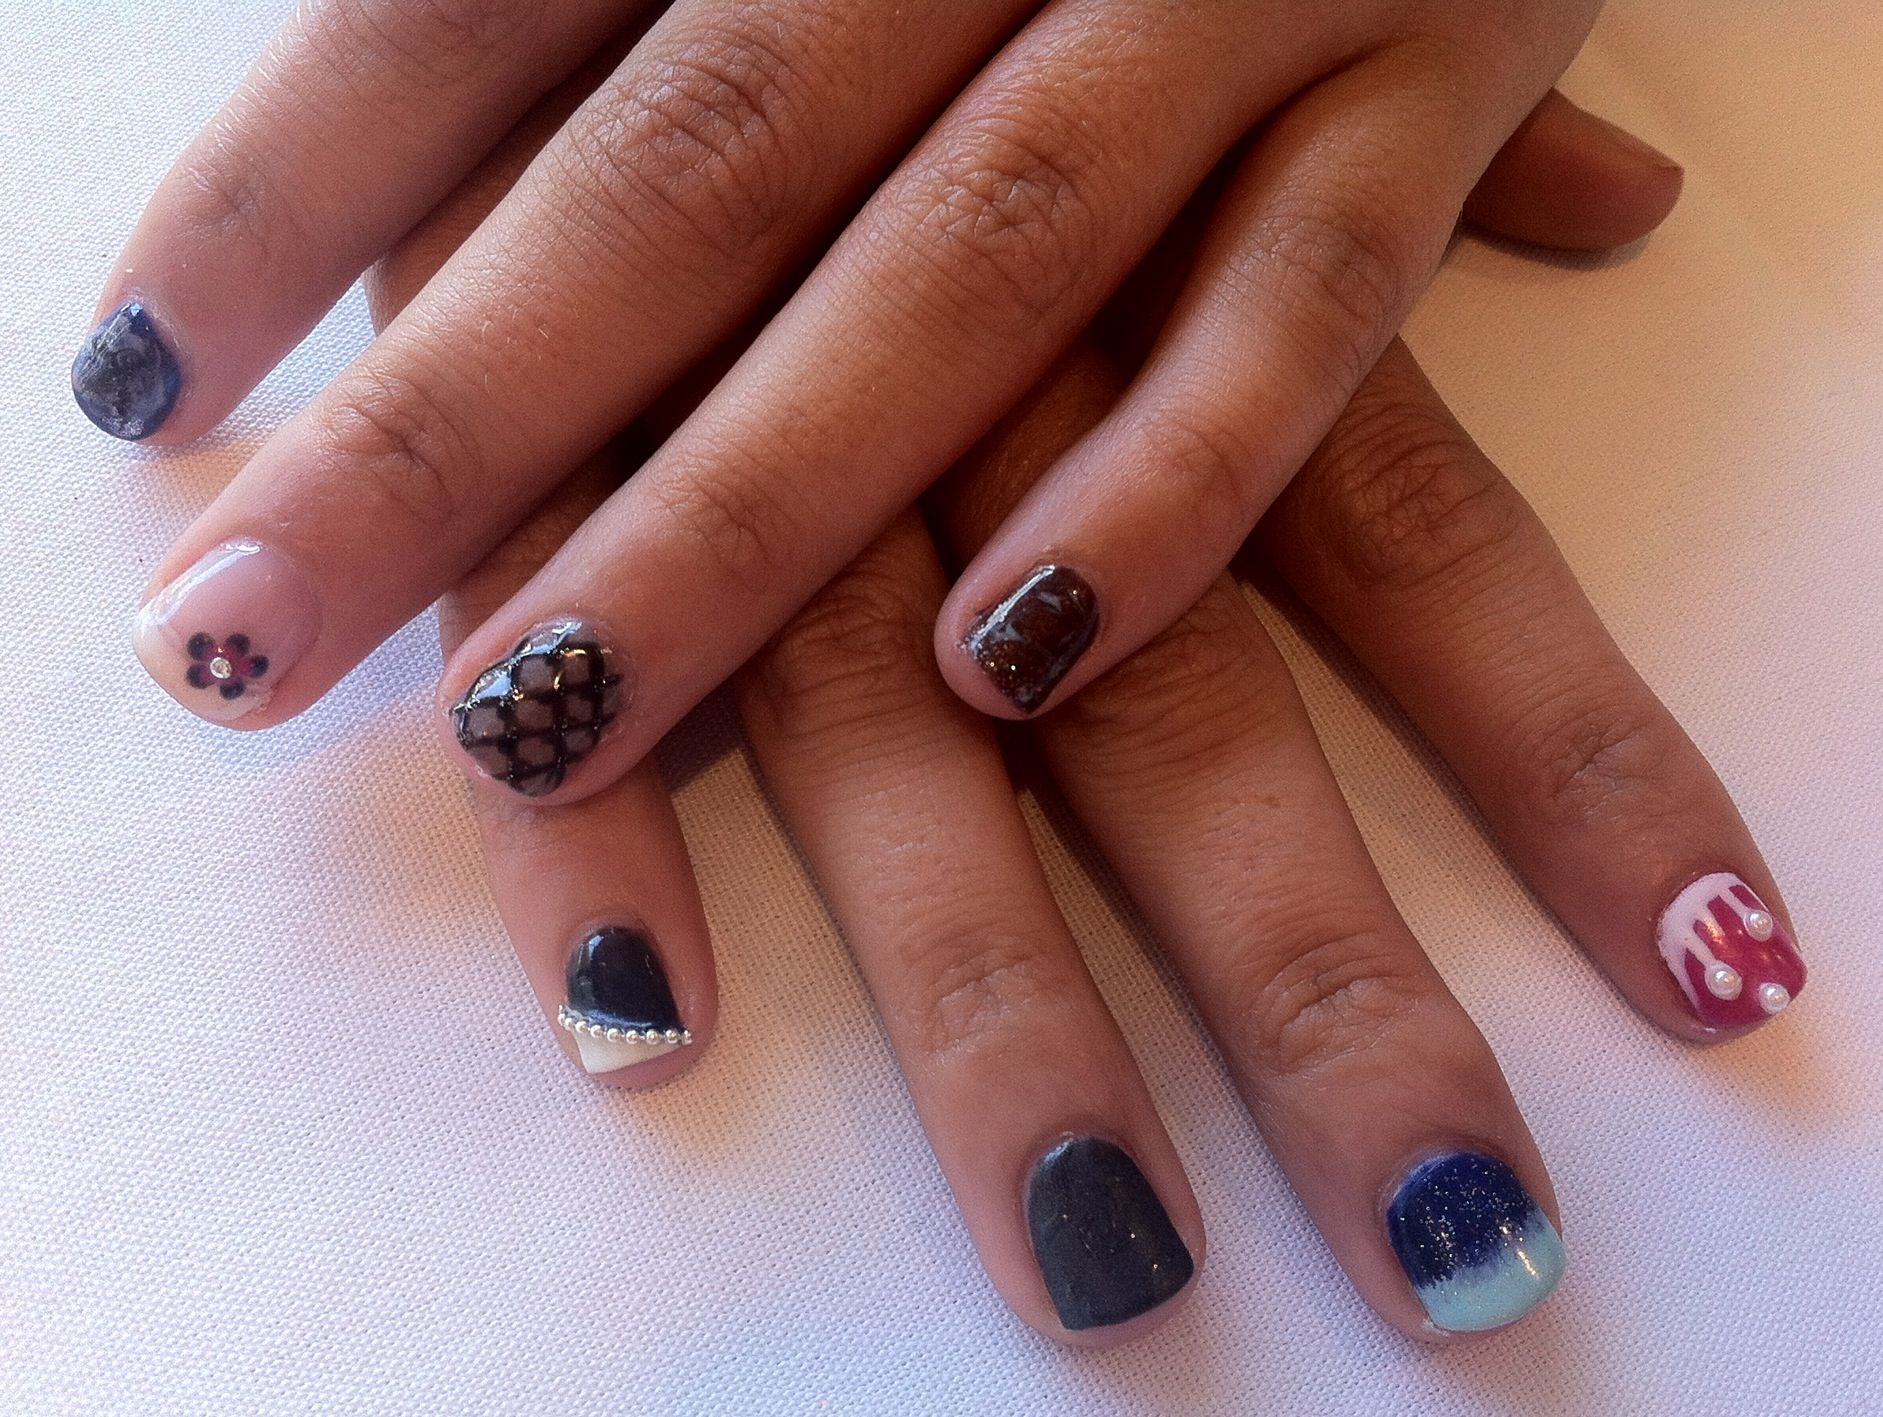 Kerri S First Nail Art Practice From Artistic Nail Design Course